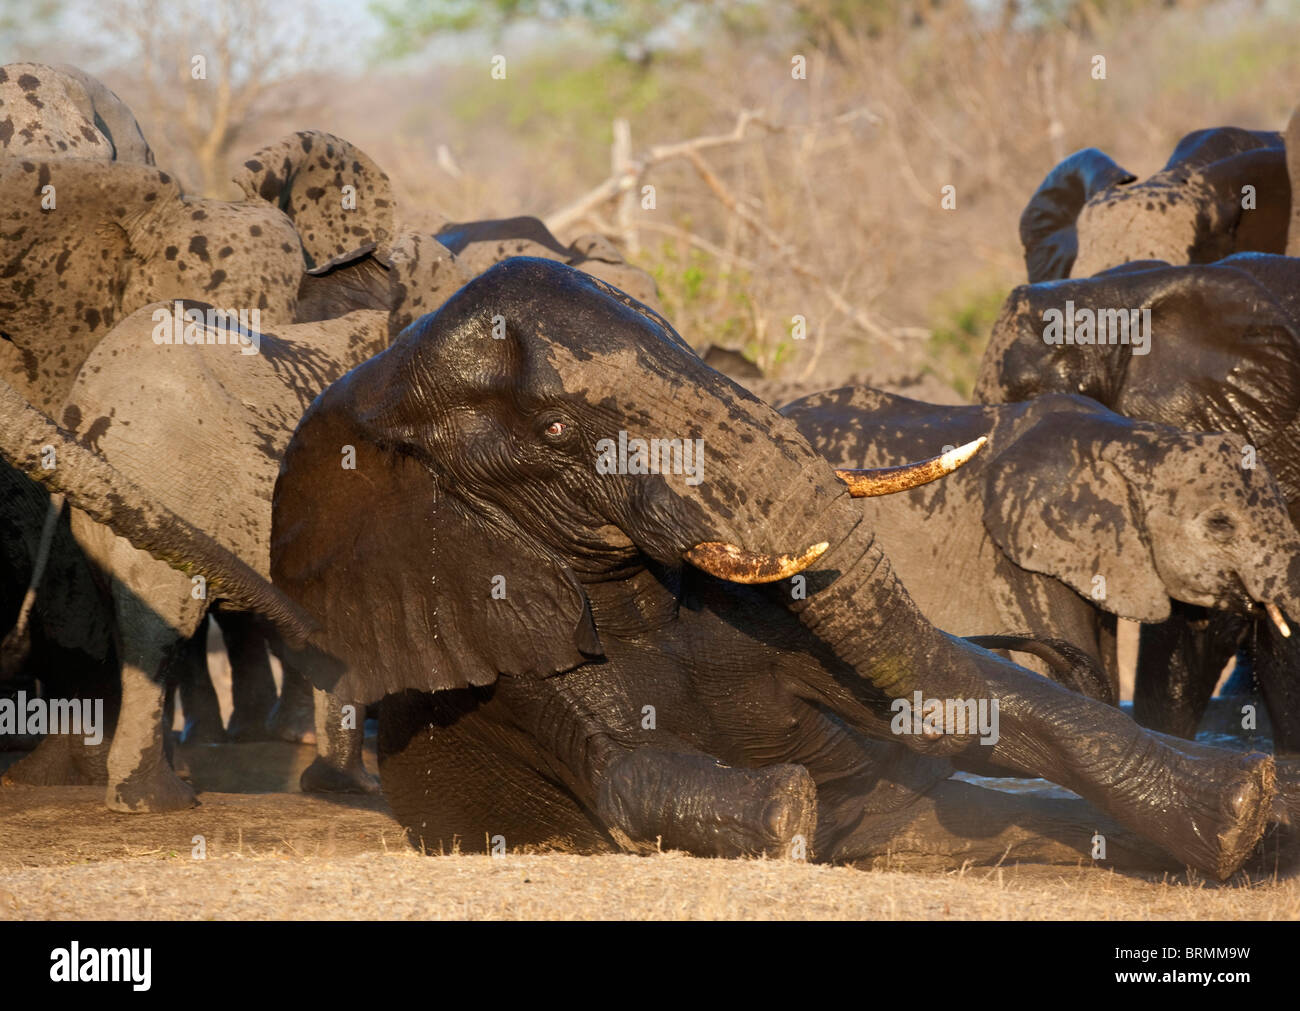 A wet bull elephant lying down on the ground with a breeding herd drinking in the background - Stock Image